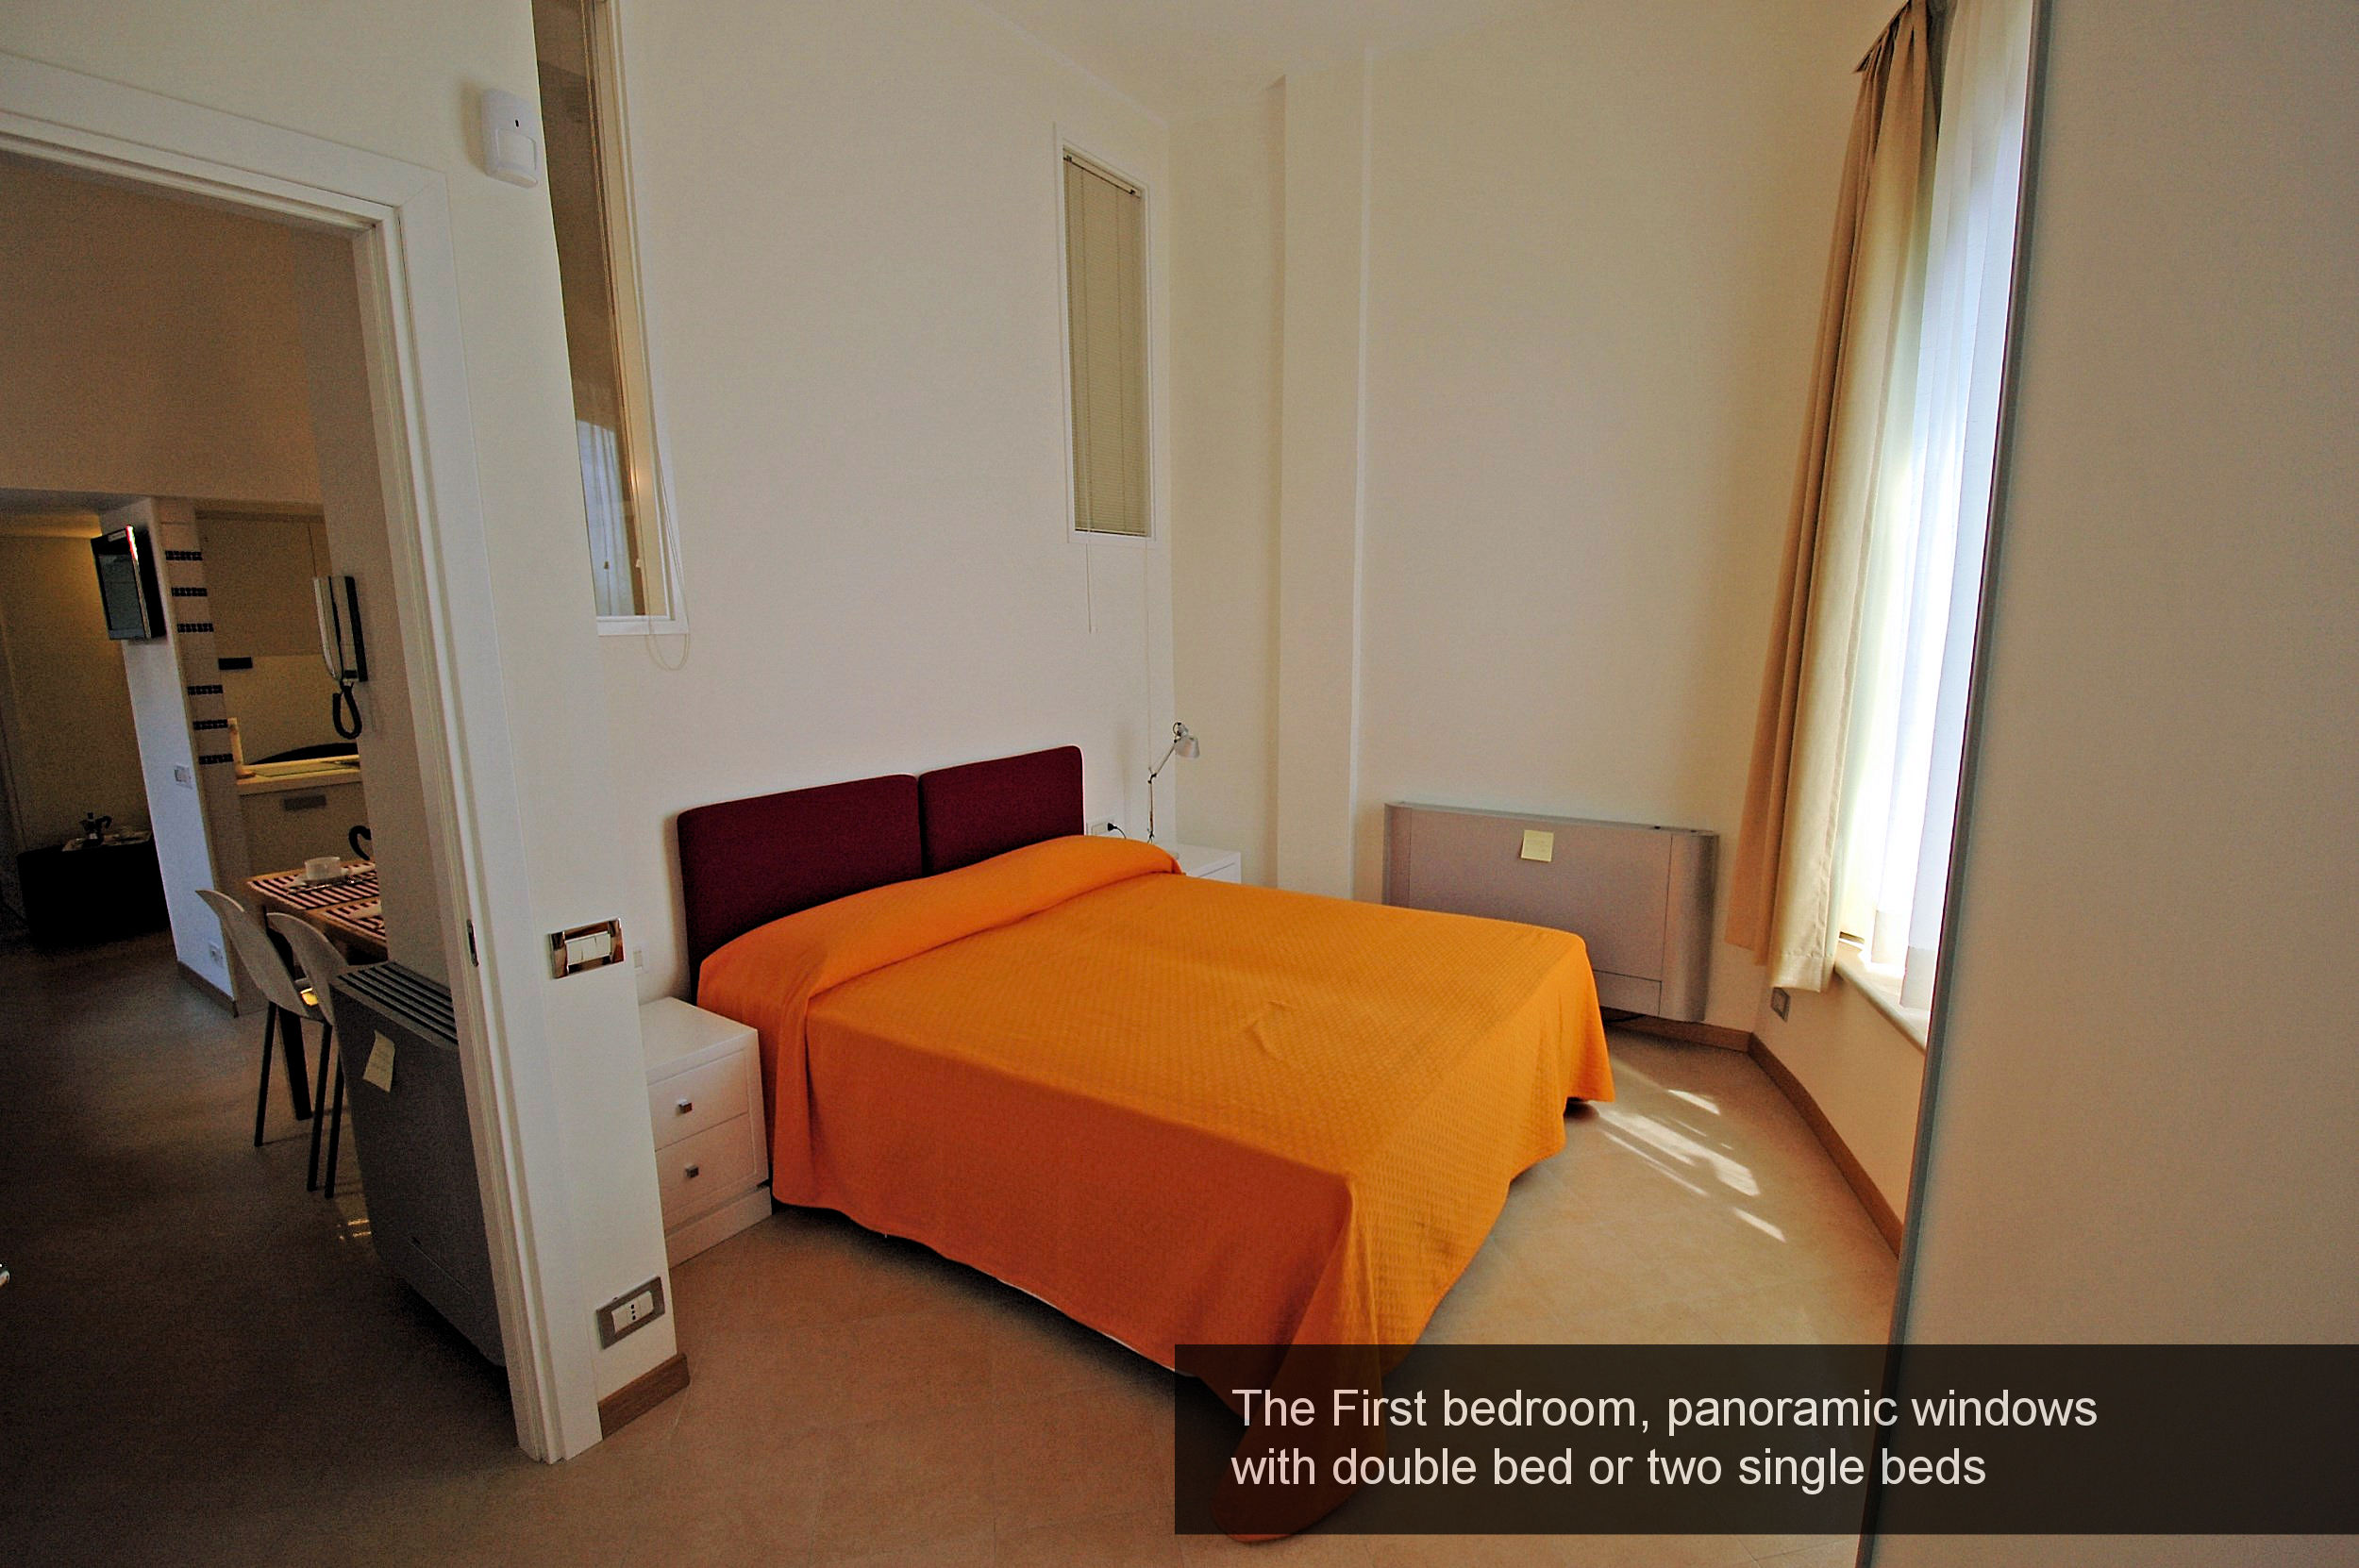 3) First bedroom, panoramic windows with double bed or two single beds